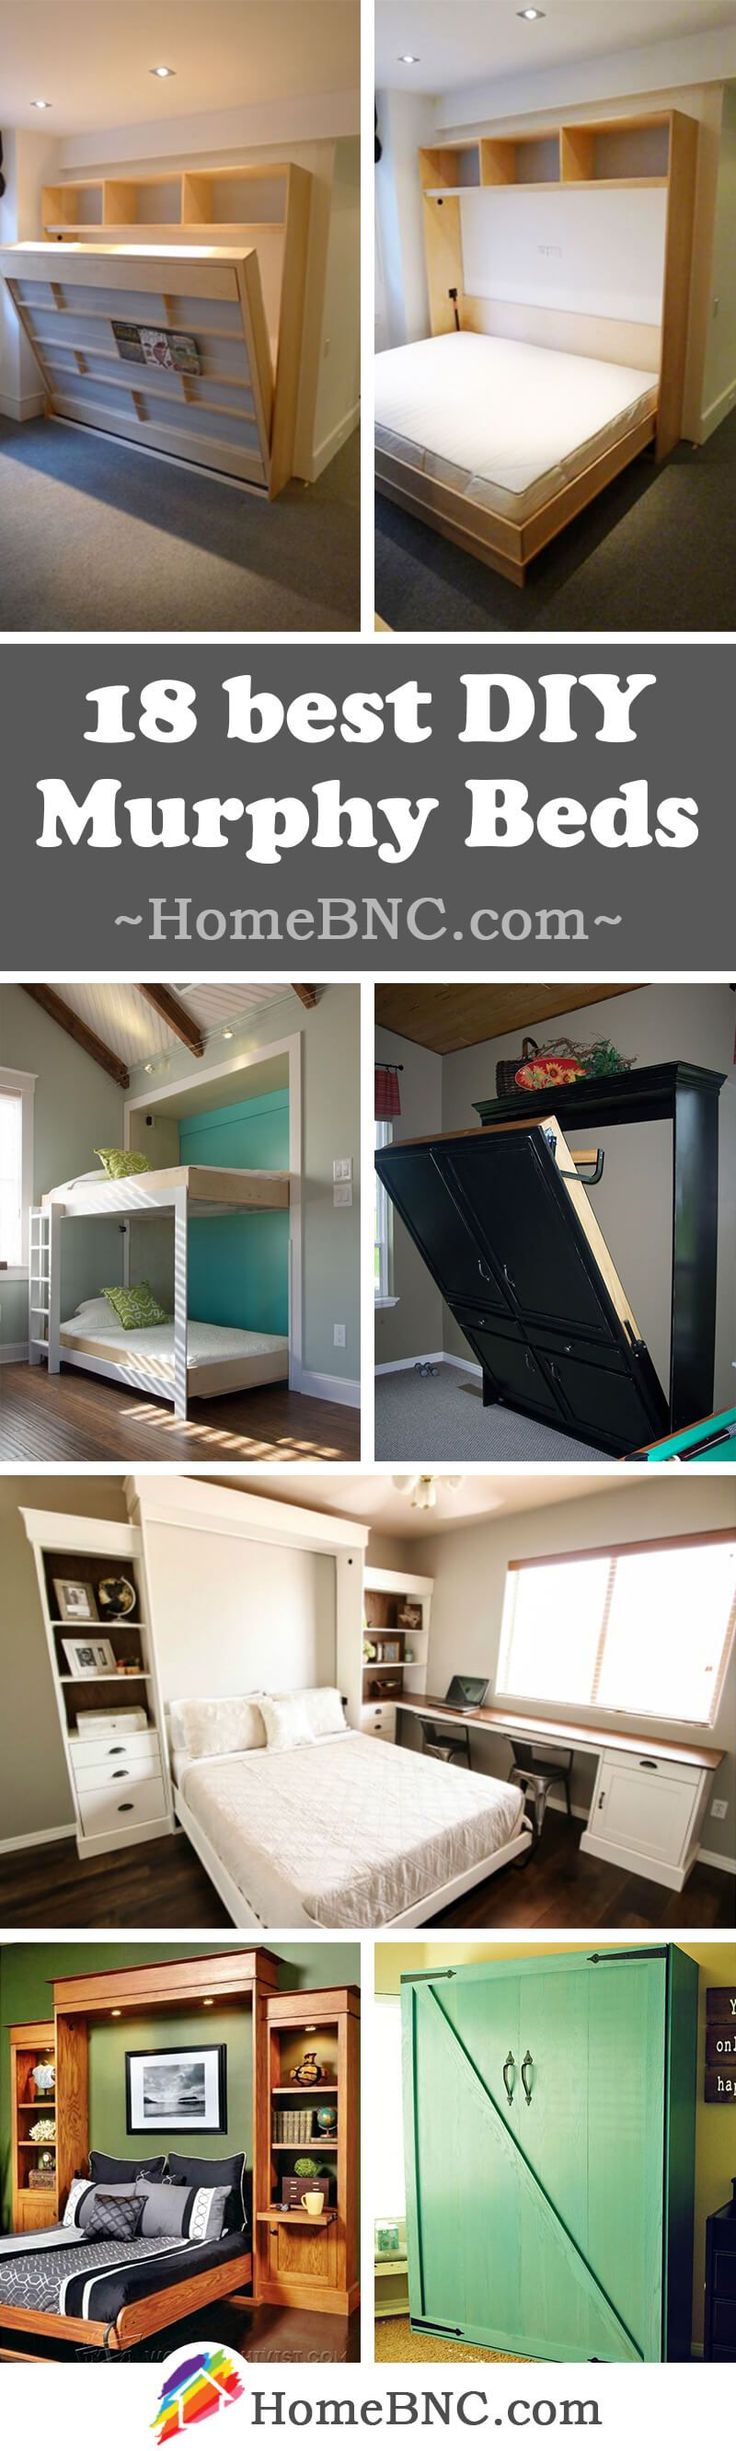 Best 25+ Murphy furniture ideas on Pinterest | Wall beds, Murphy ...